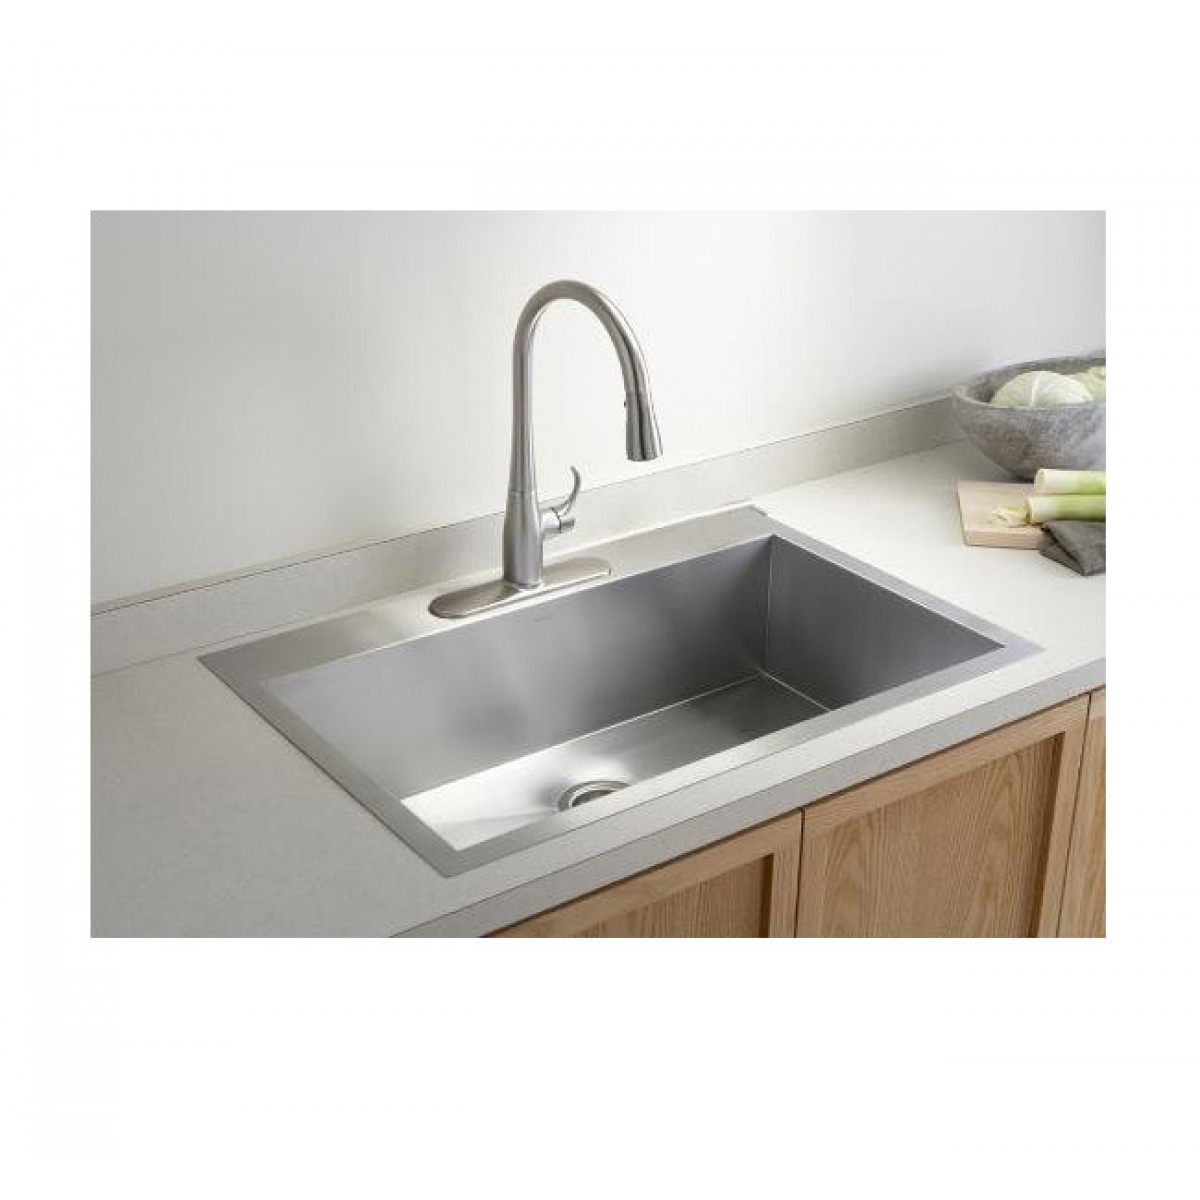 Best Kitchen Sink: 36 Inch Top-Mount / Drop-In Stainless Steel Single Super